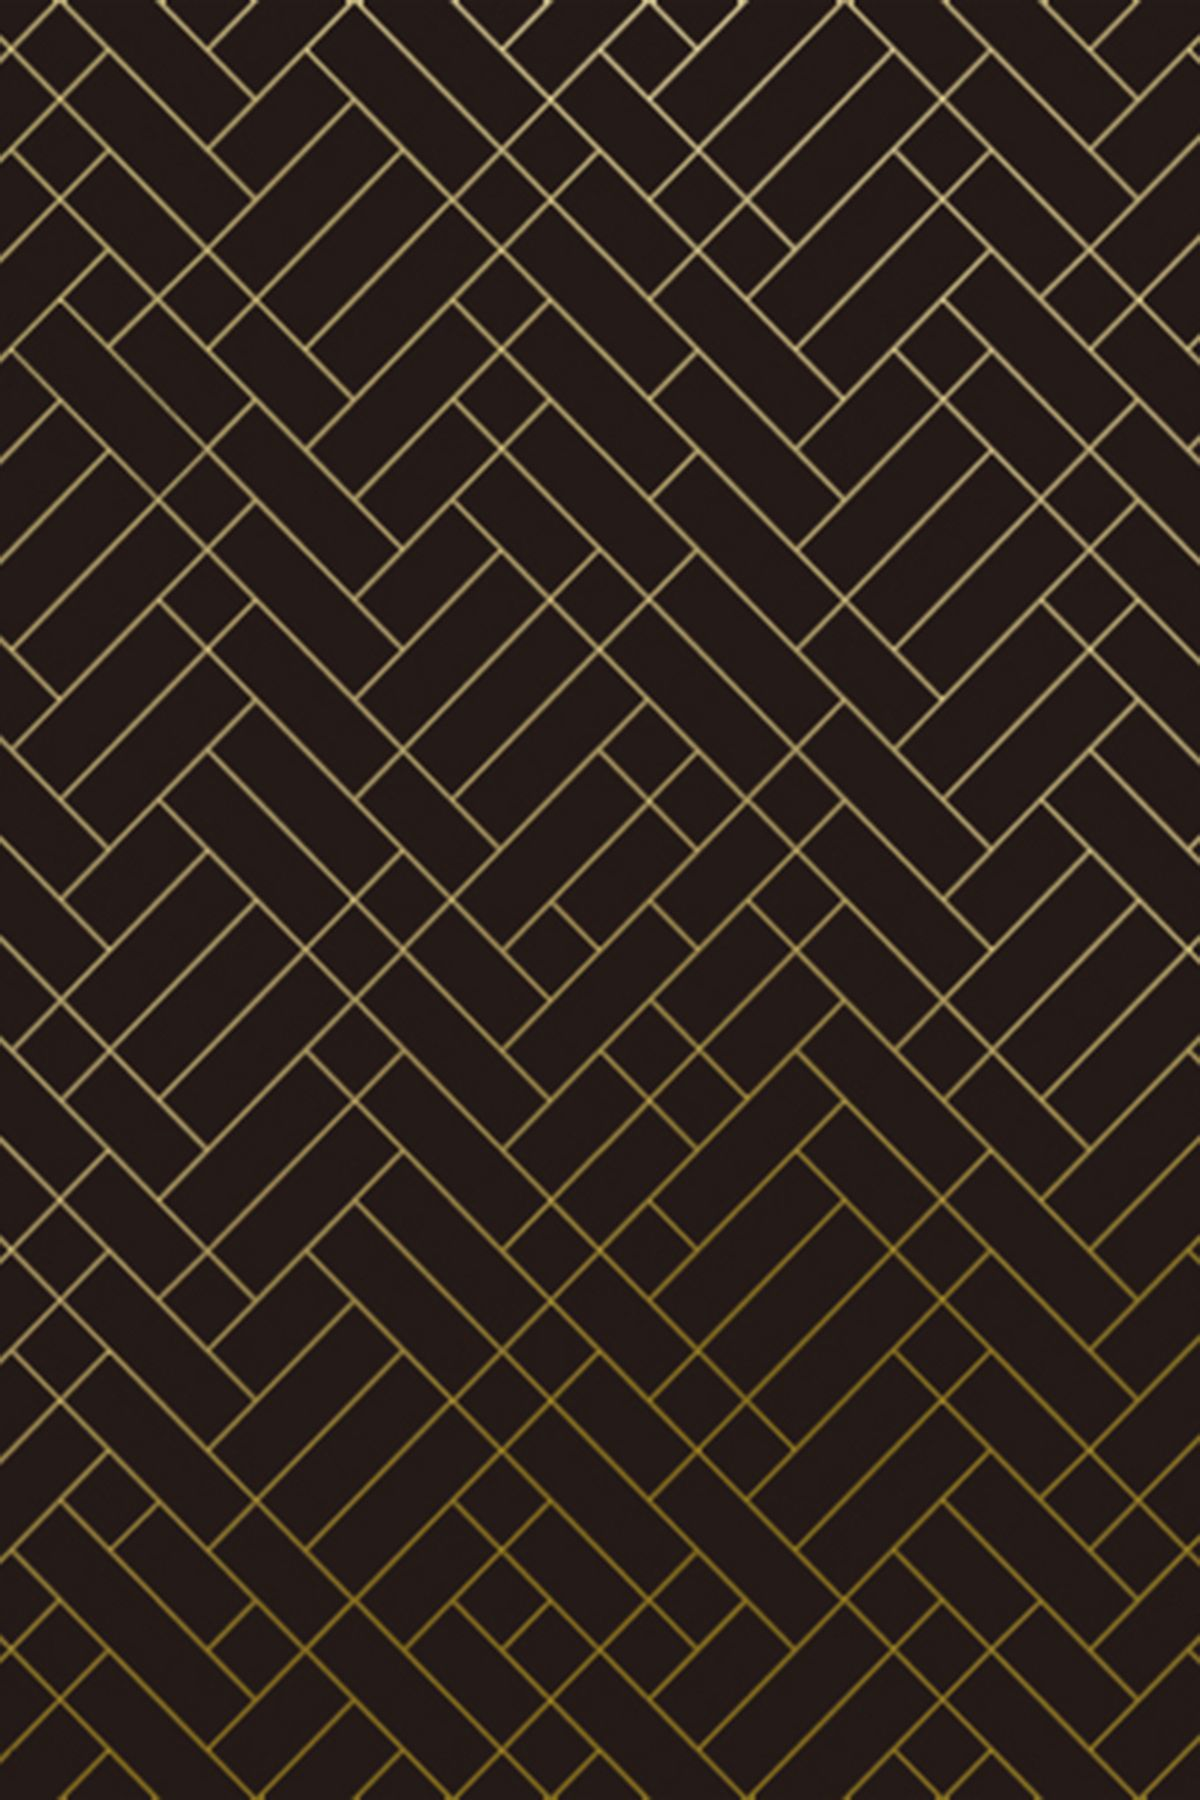 Tile Wallpaper Part - 43: Tapet Cafe Tile Wallpaper Is Evocative Of A Parquet Floor Pattern, But With  Out The